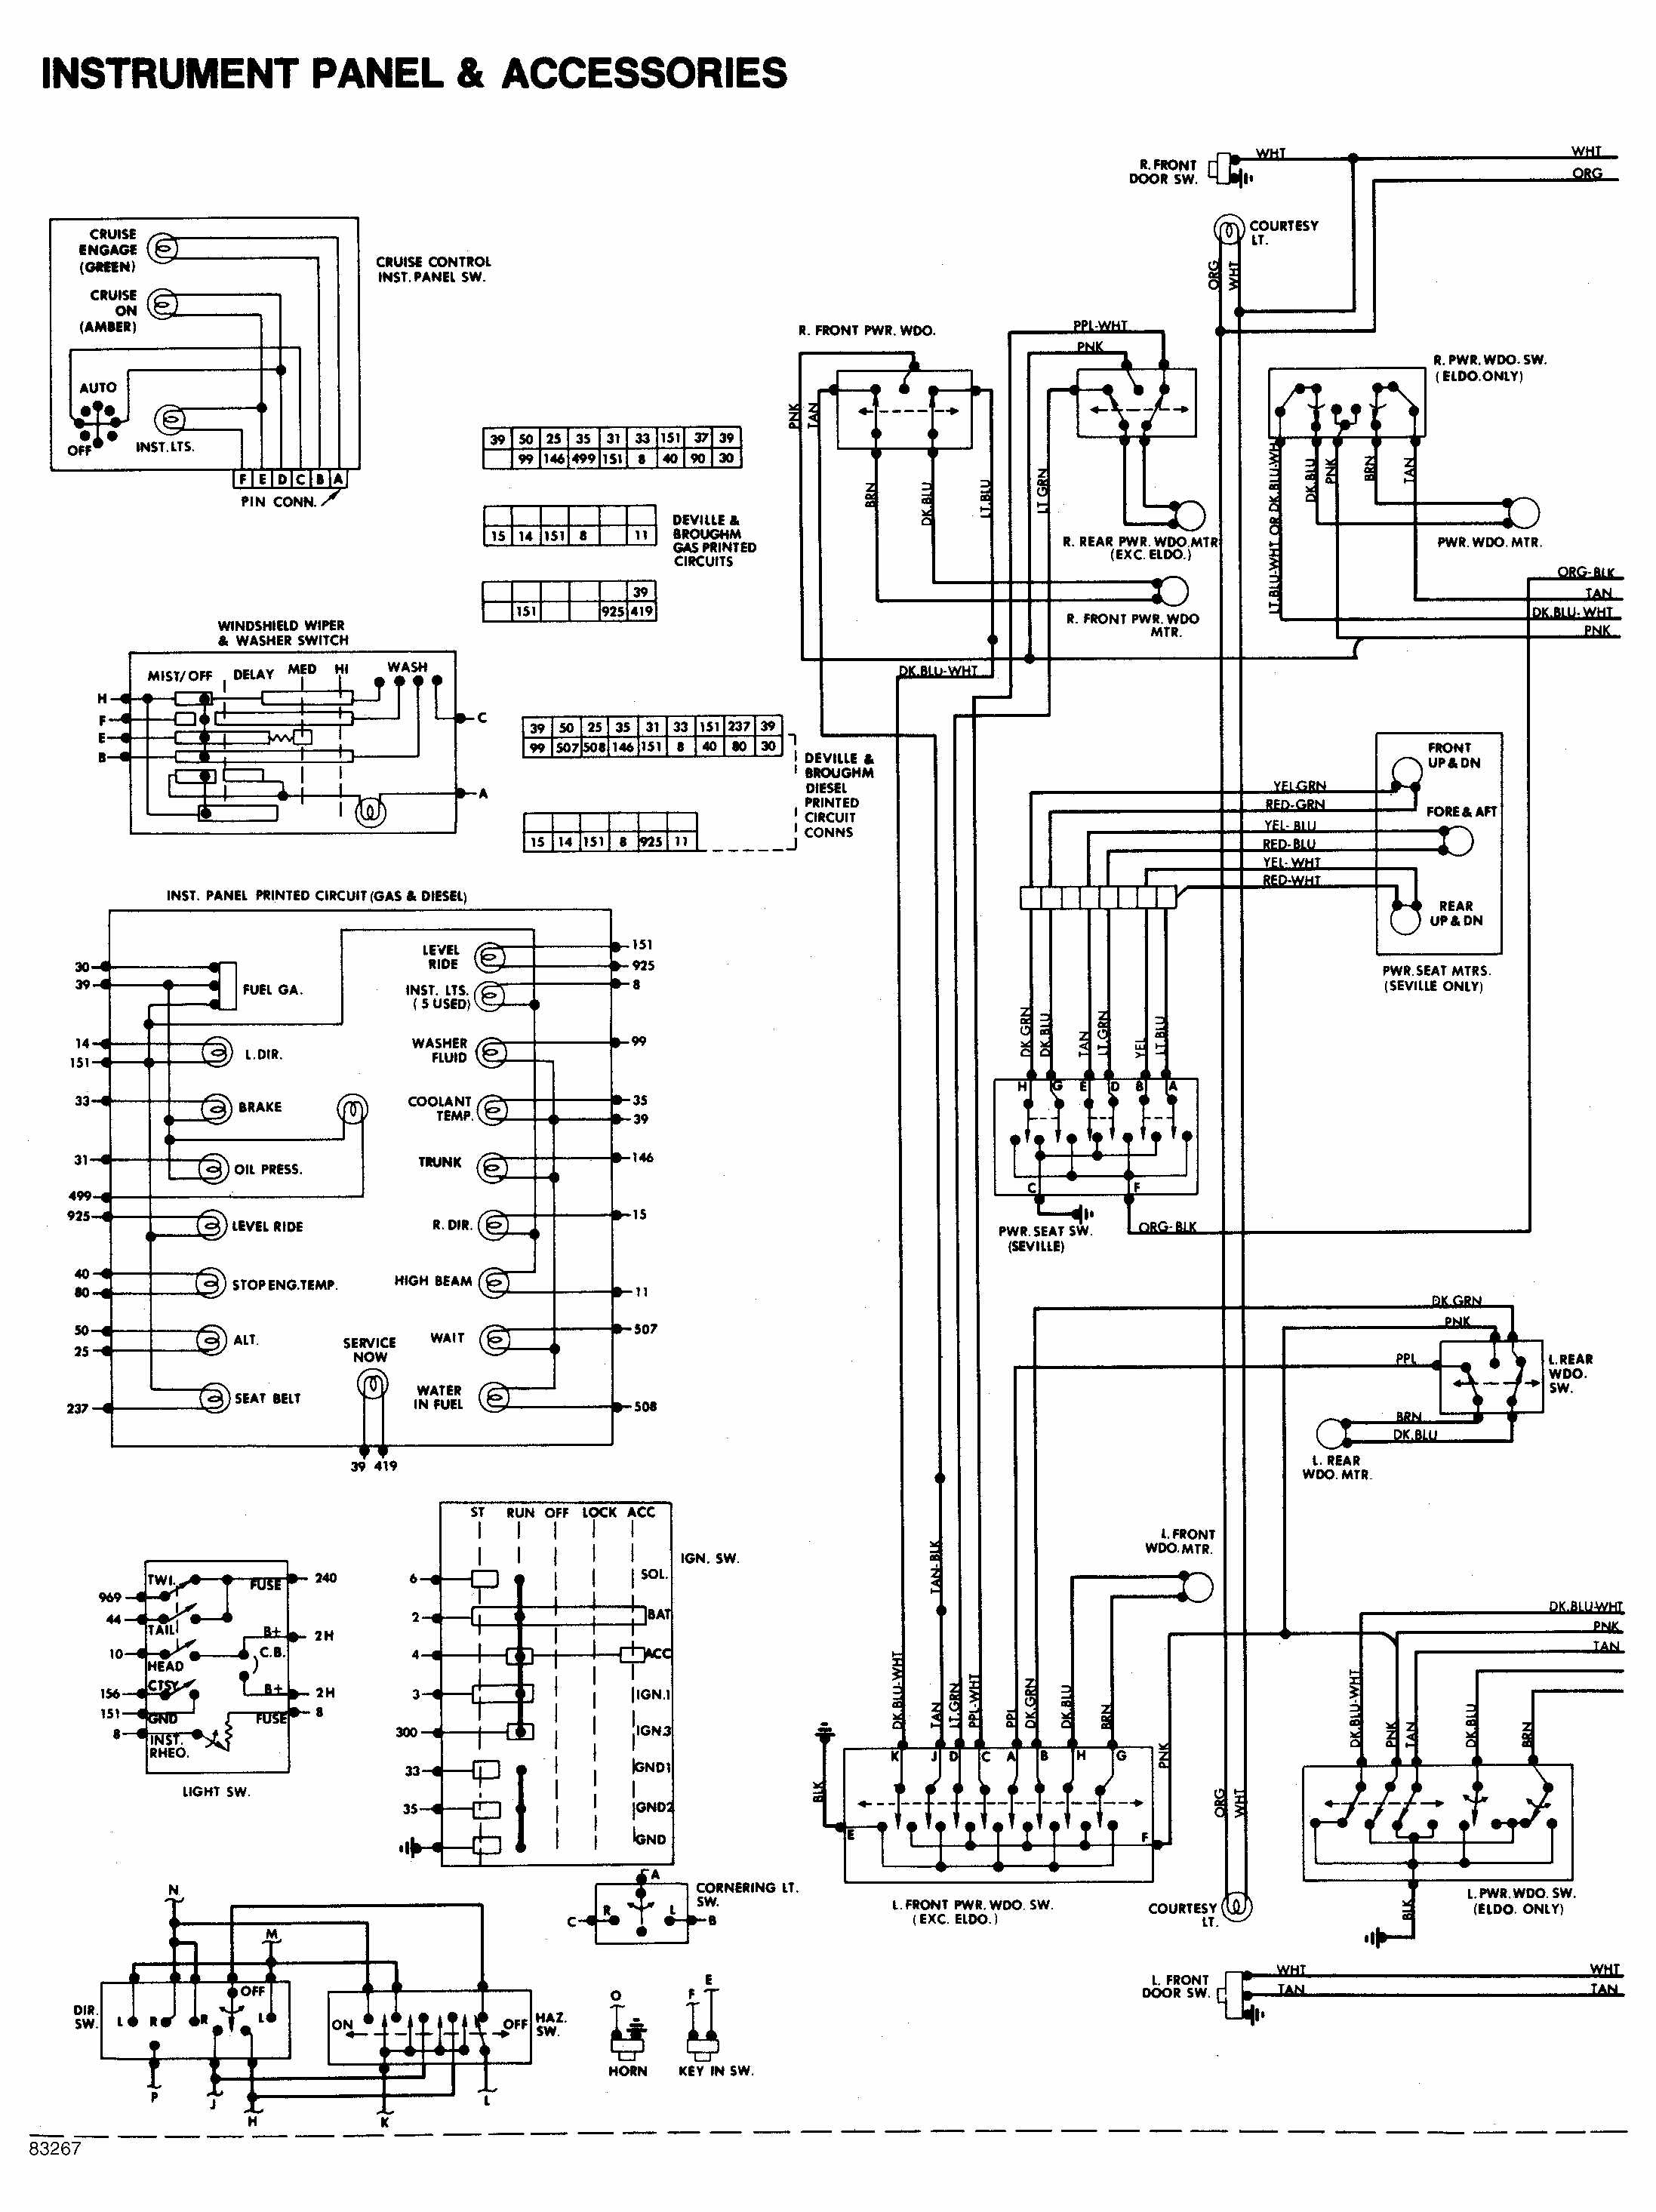 Accessories Wiring Diagram Detailed Schematics Multiple Battery Isolator Chevy Diagrams 4 Post 1984 Cadillac Deville Instrument Panel And Drawing